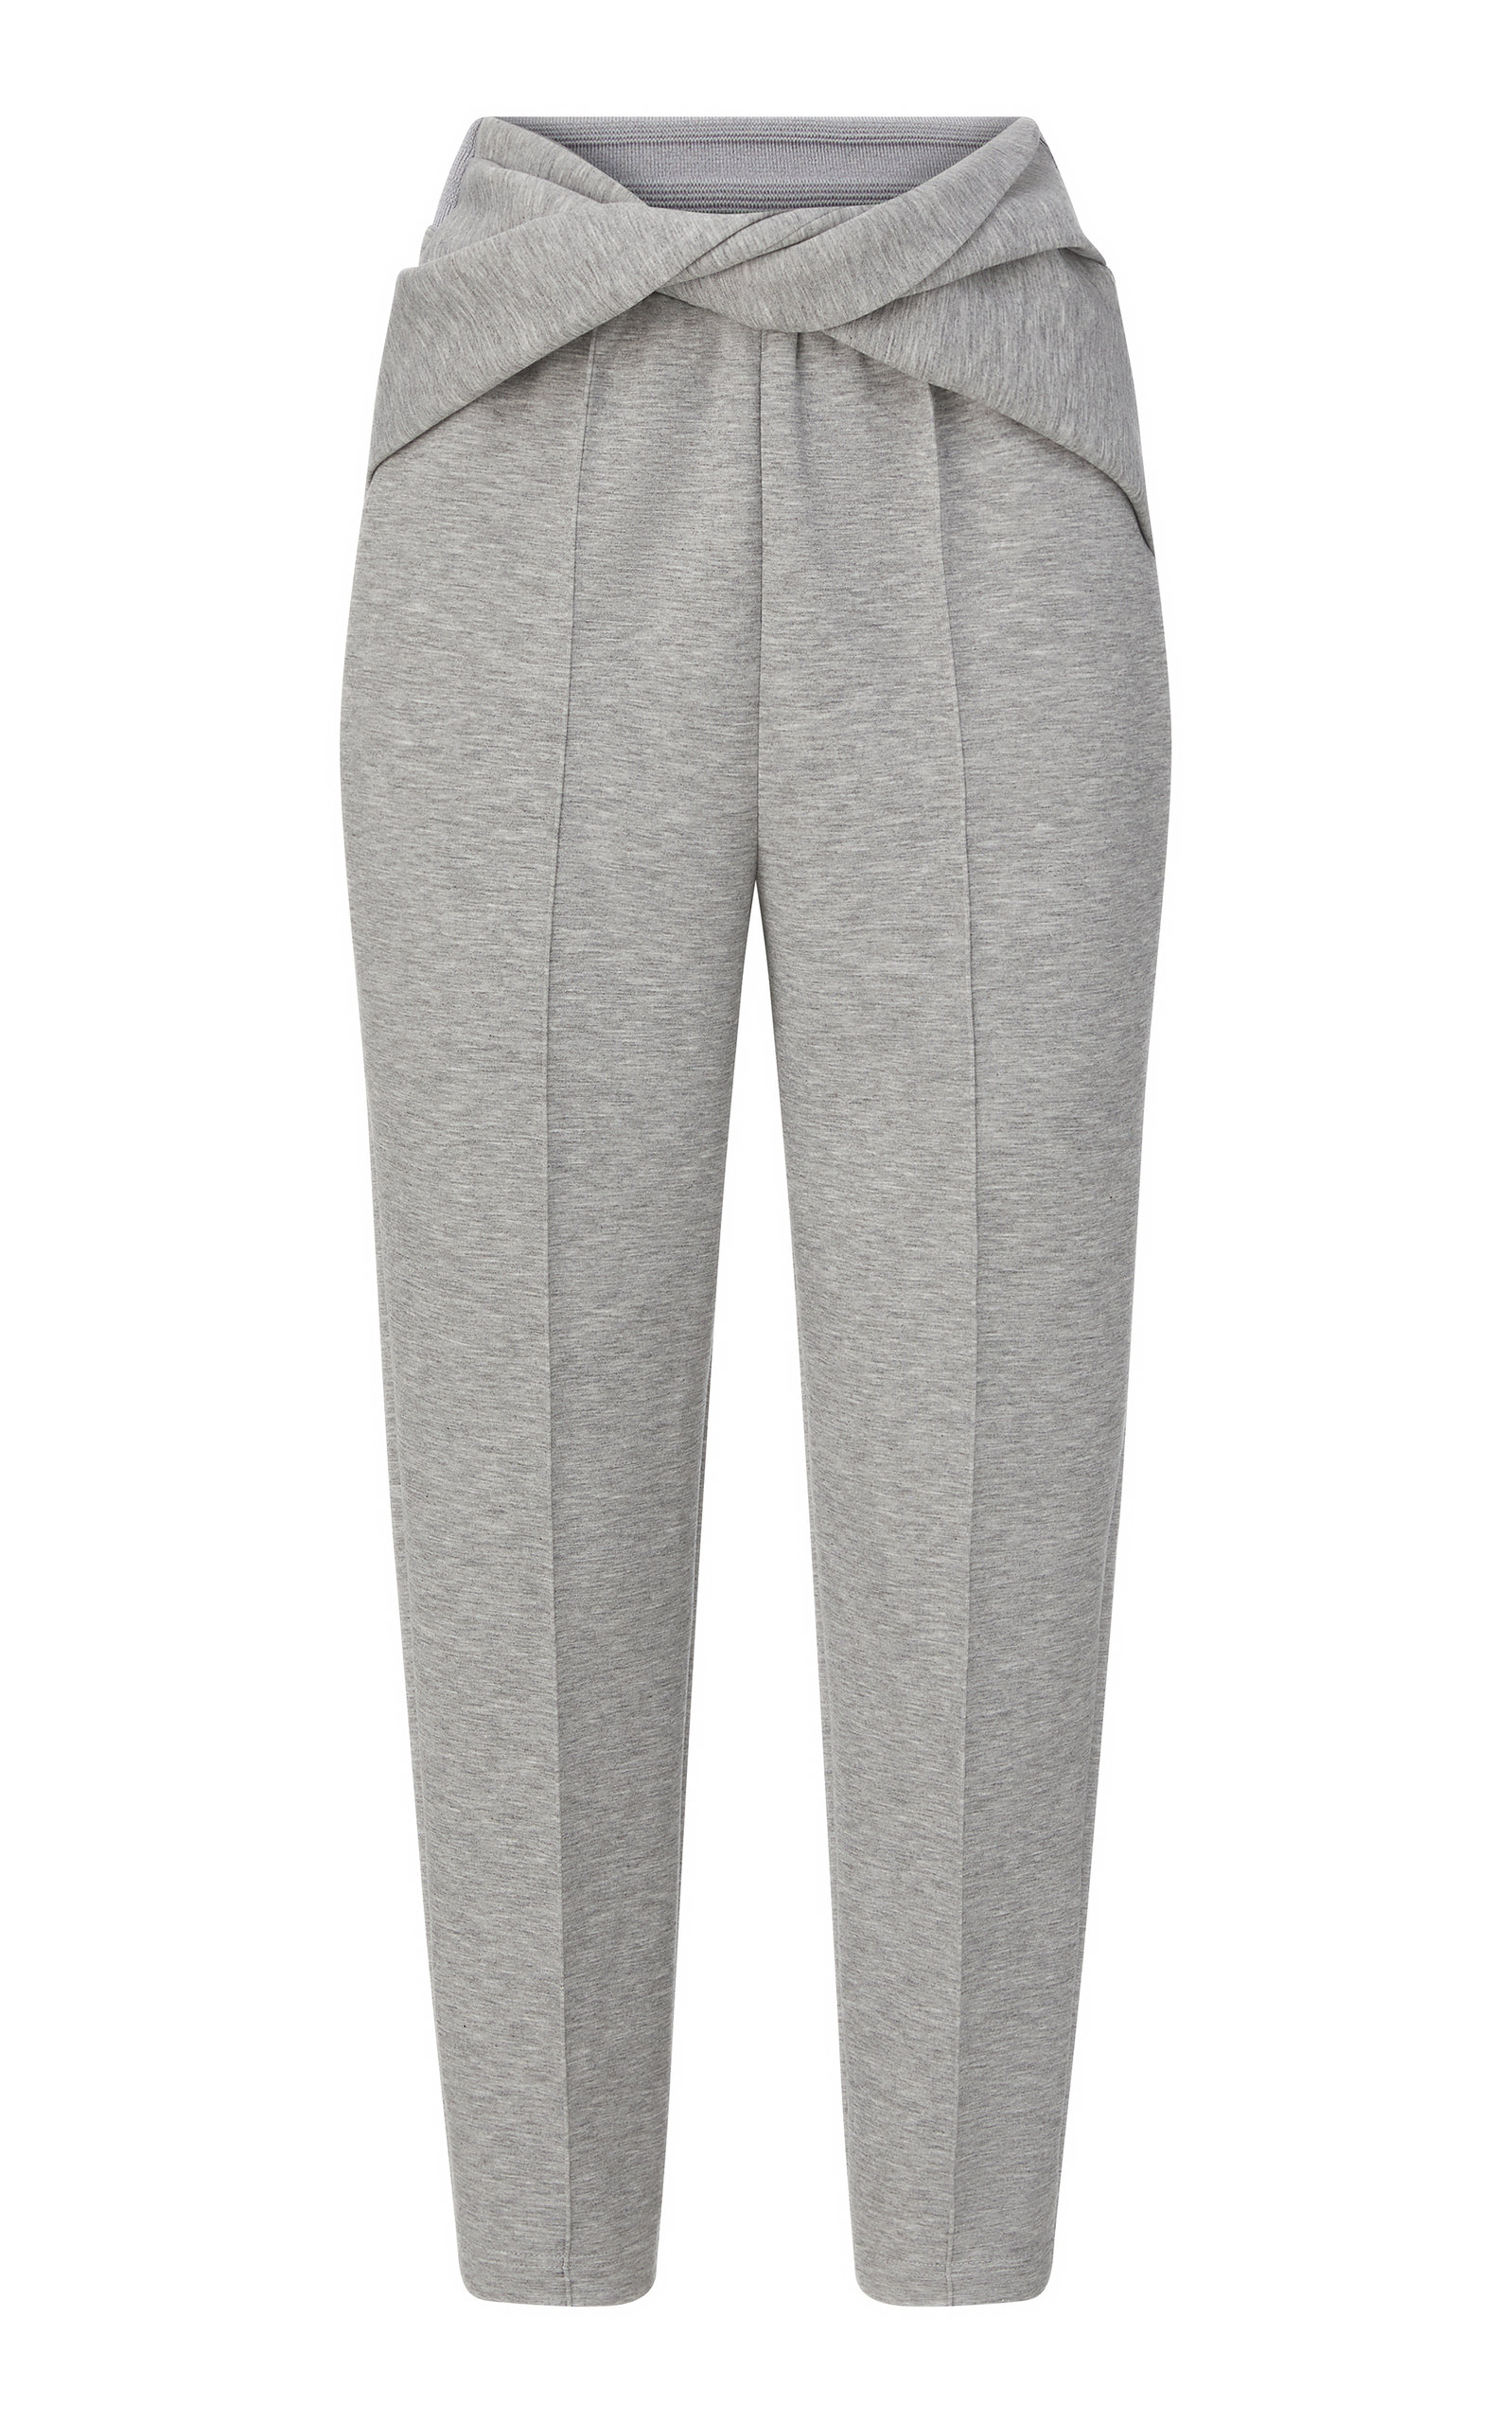 Women's Twisted Jersey Tapered Pants